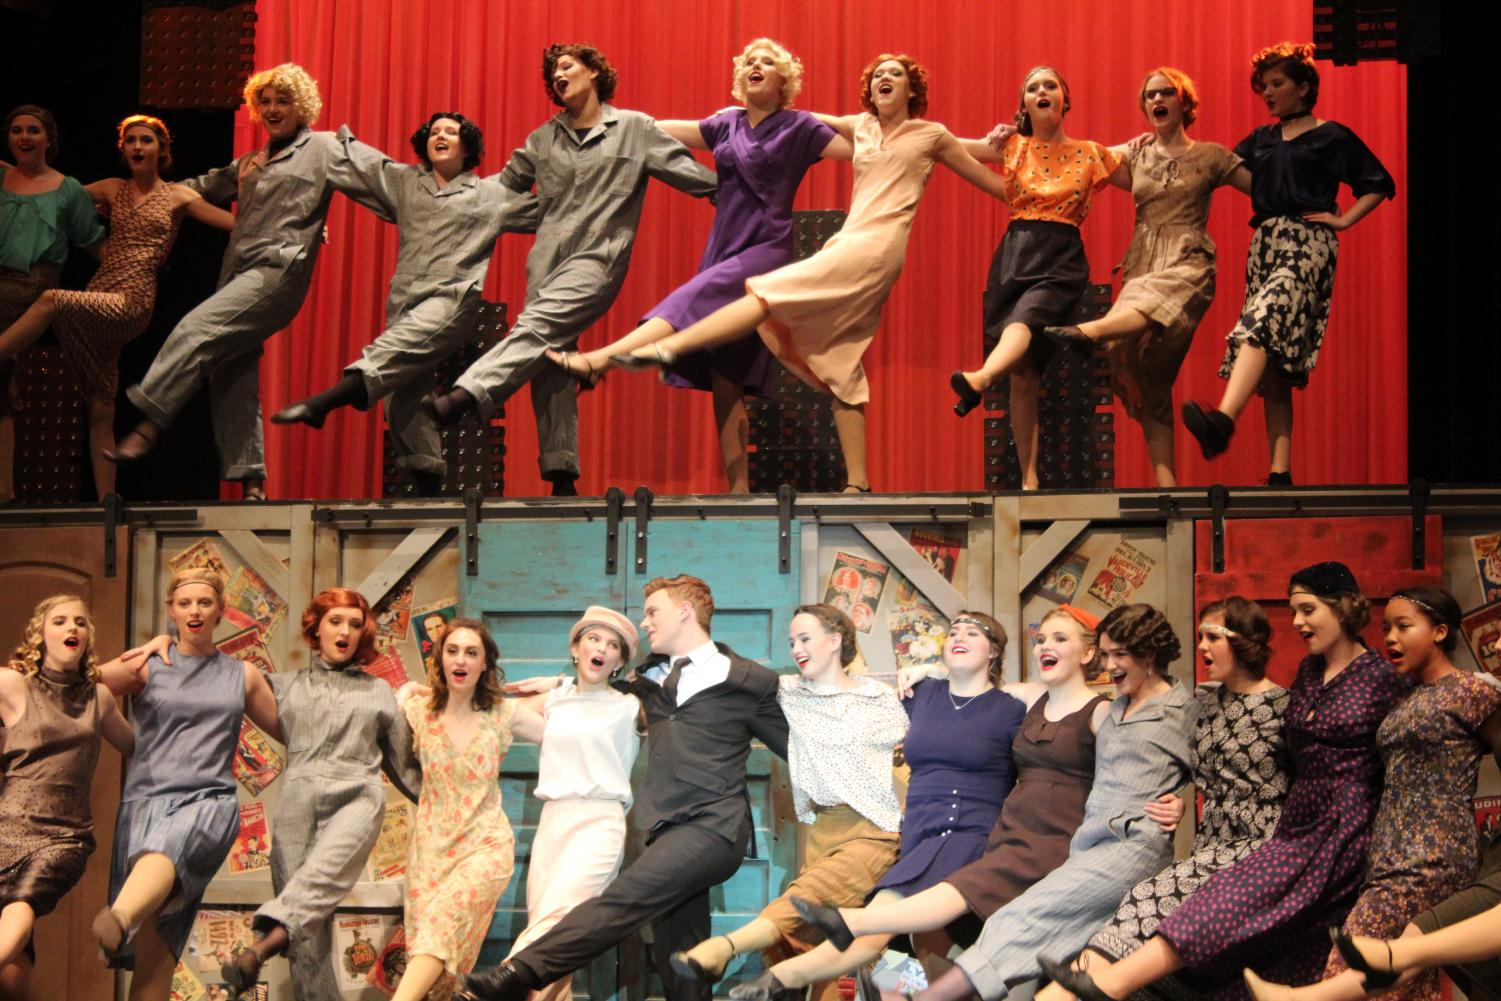 The+cast+lines+up+for+a+dramatic+kick-line